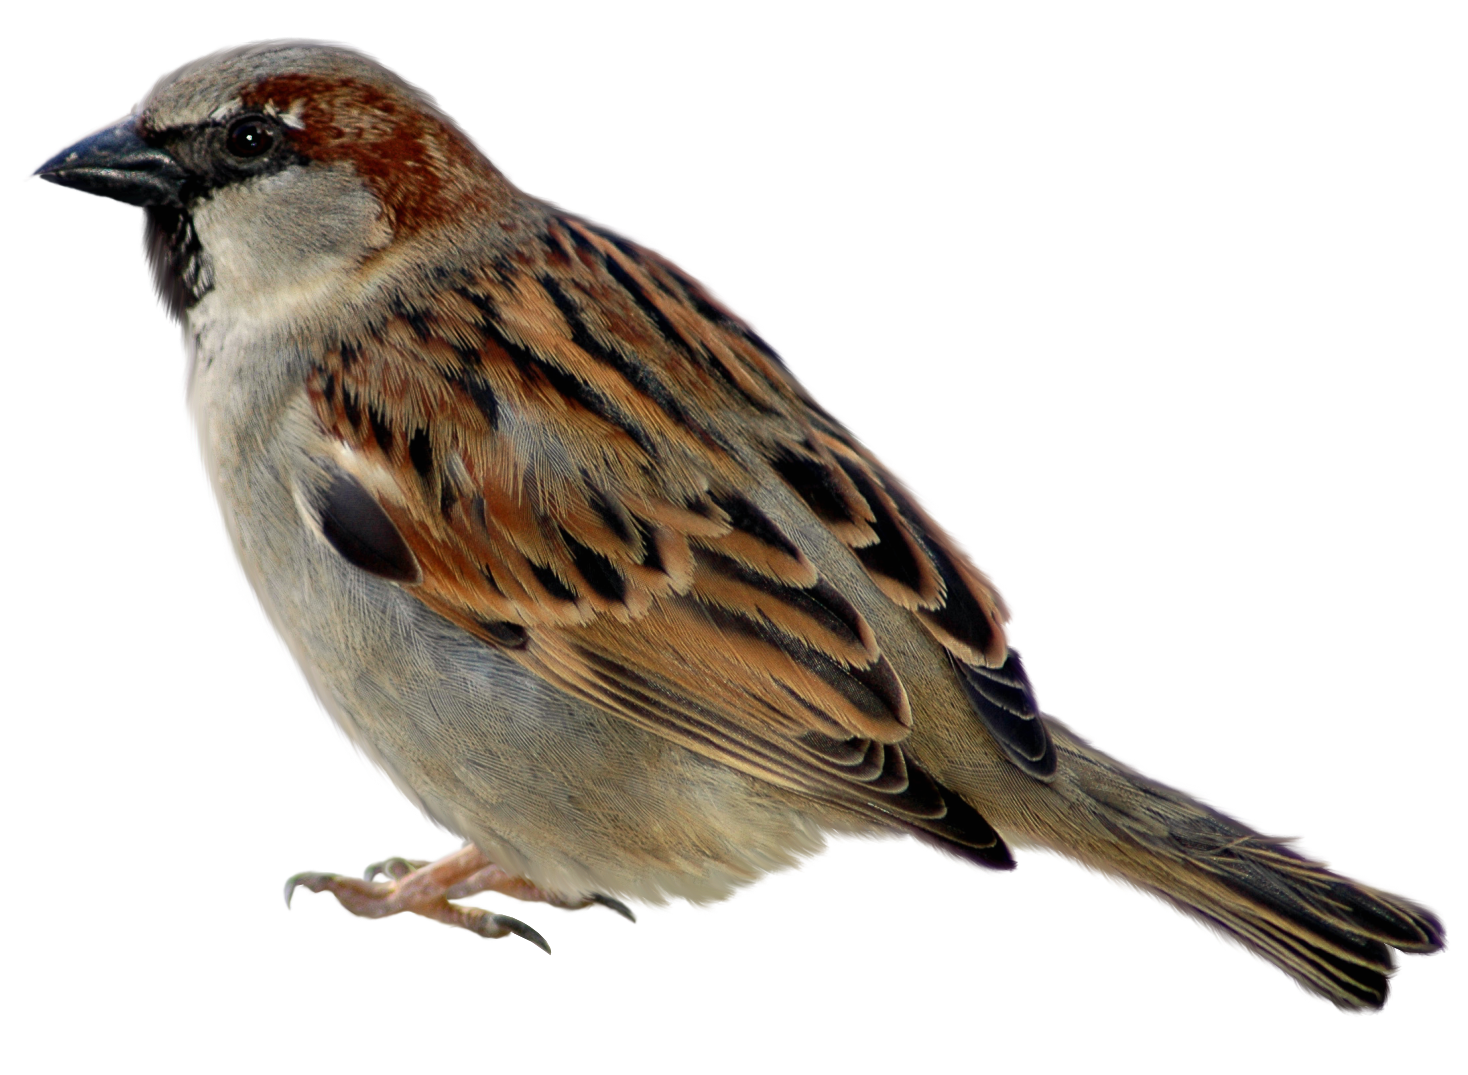 Swamp Sparrow clipart #1, Download drawings